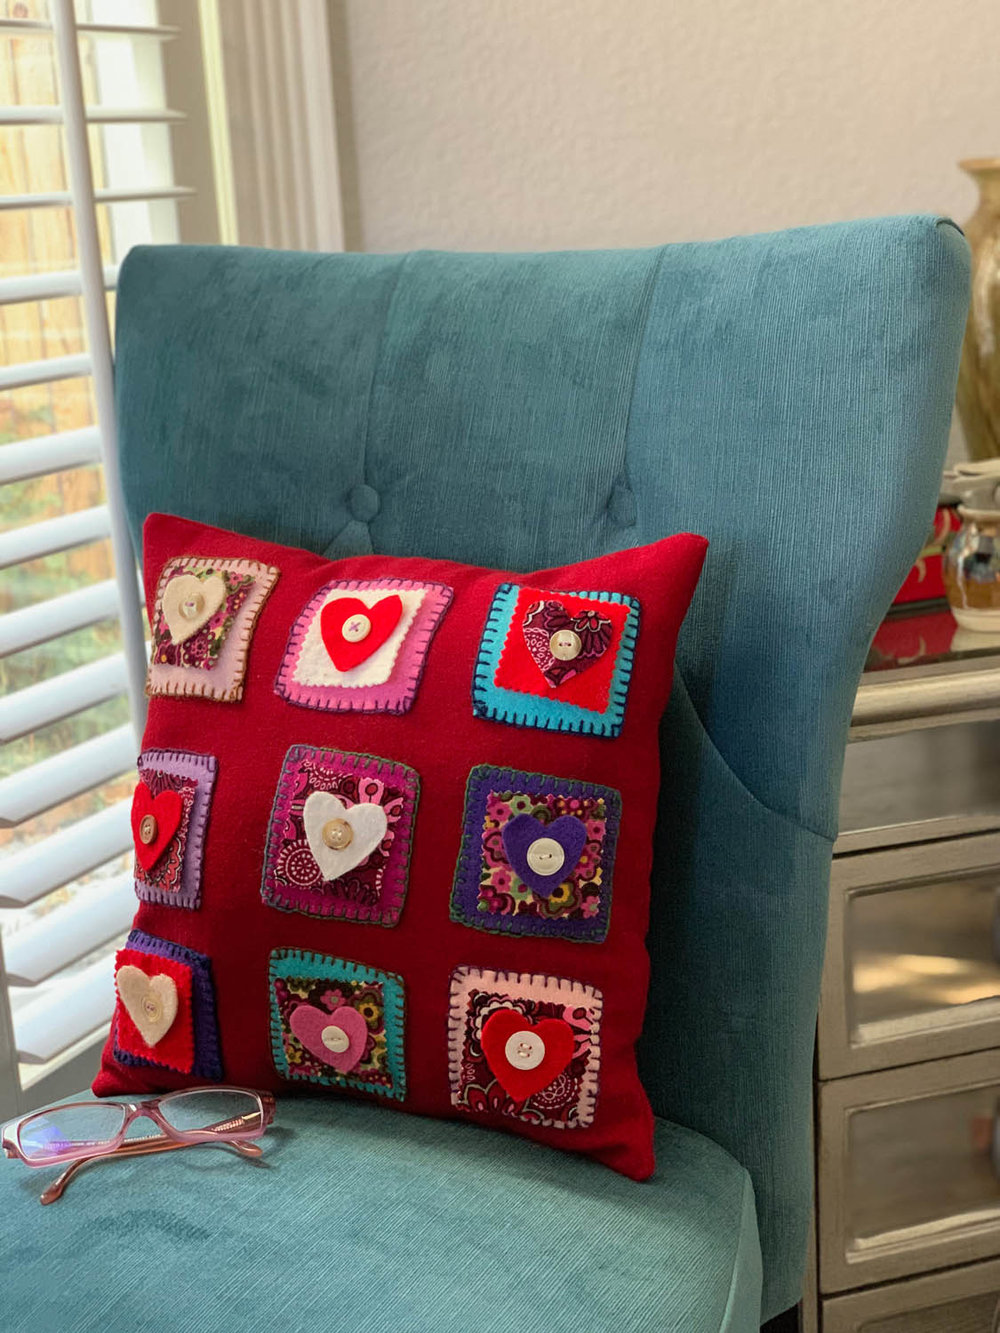 Folksy Felted Valentine's Day hand embroidered nine-patch hearts pillow in red and vibrant colors.